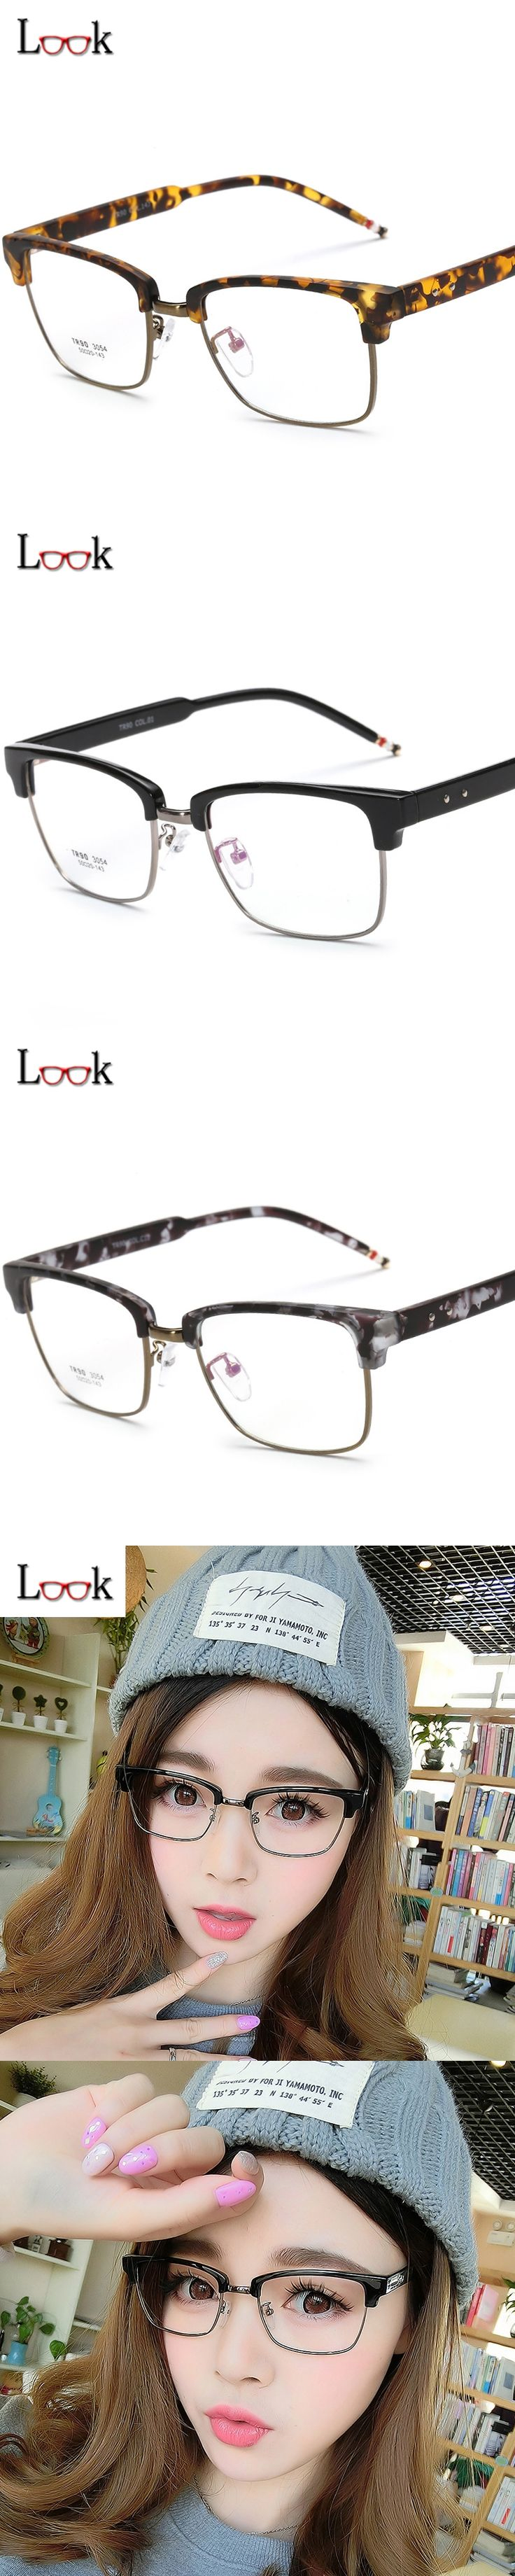 New 2017 Optical Glasses Frame Lentes Opticos Eyeglasses Fashion Eye Glasses Frames For Women Men Vintage Prescription Eyewear